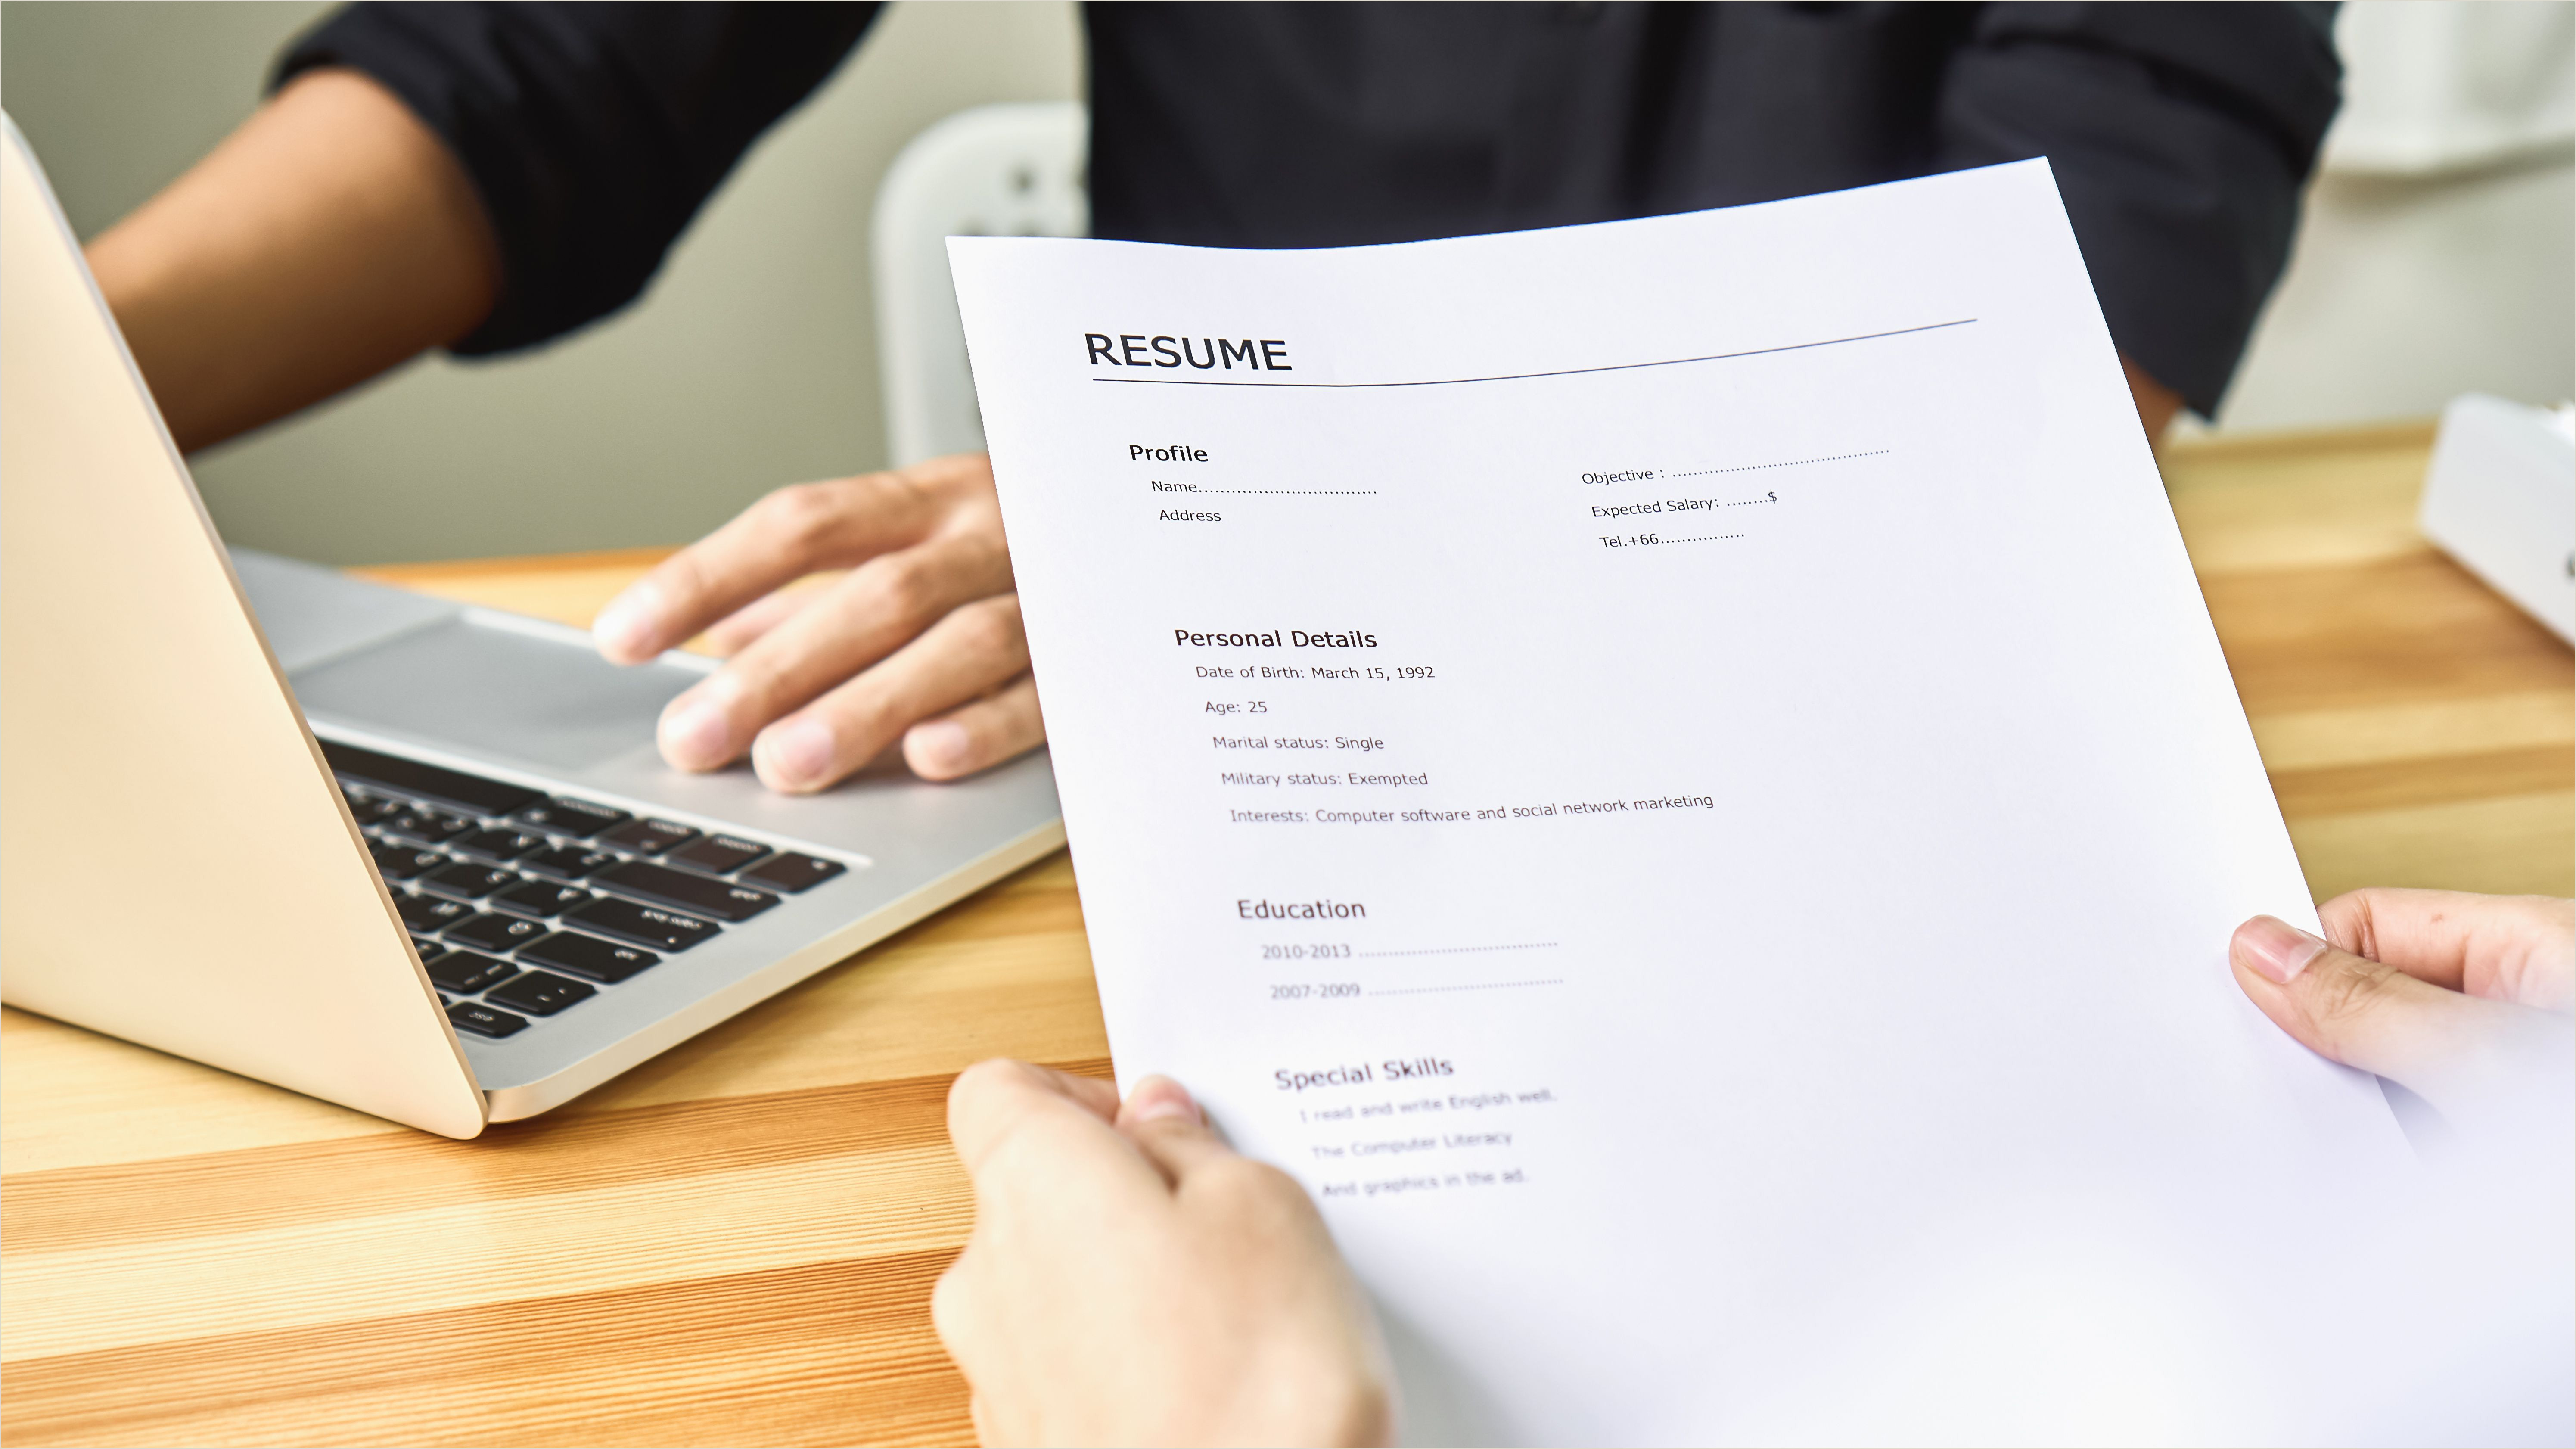 Standard Settings for Resume Margins